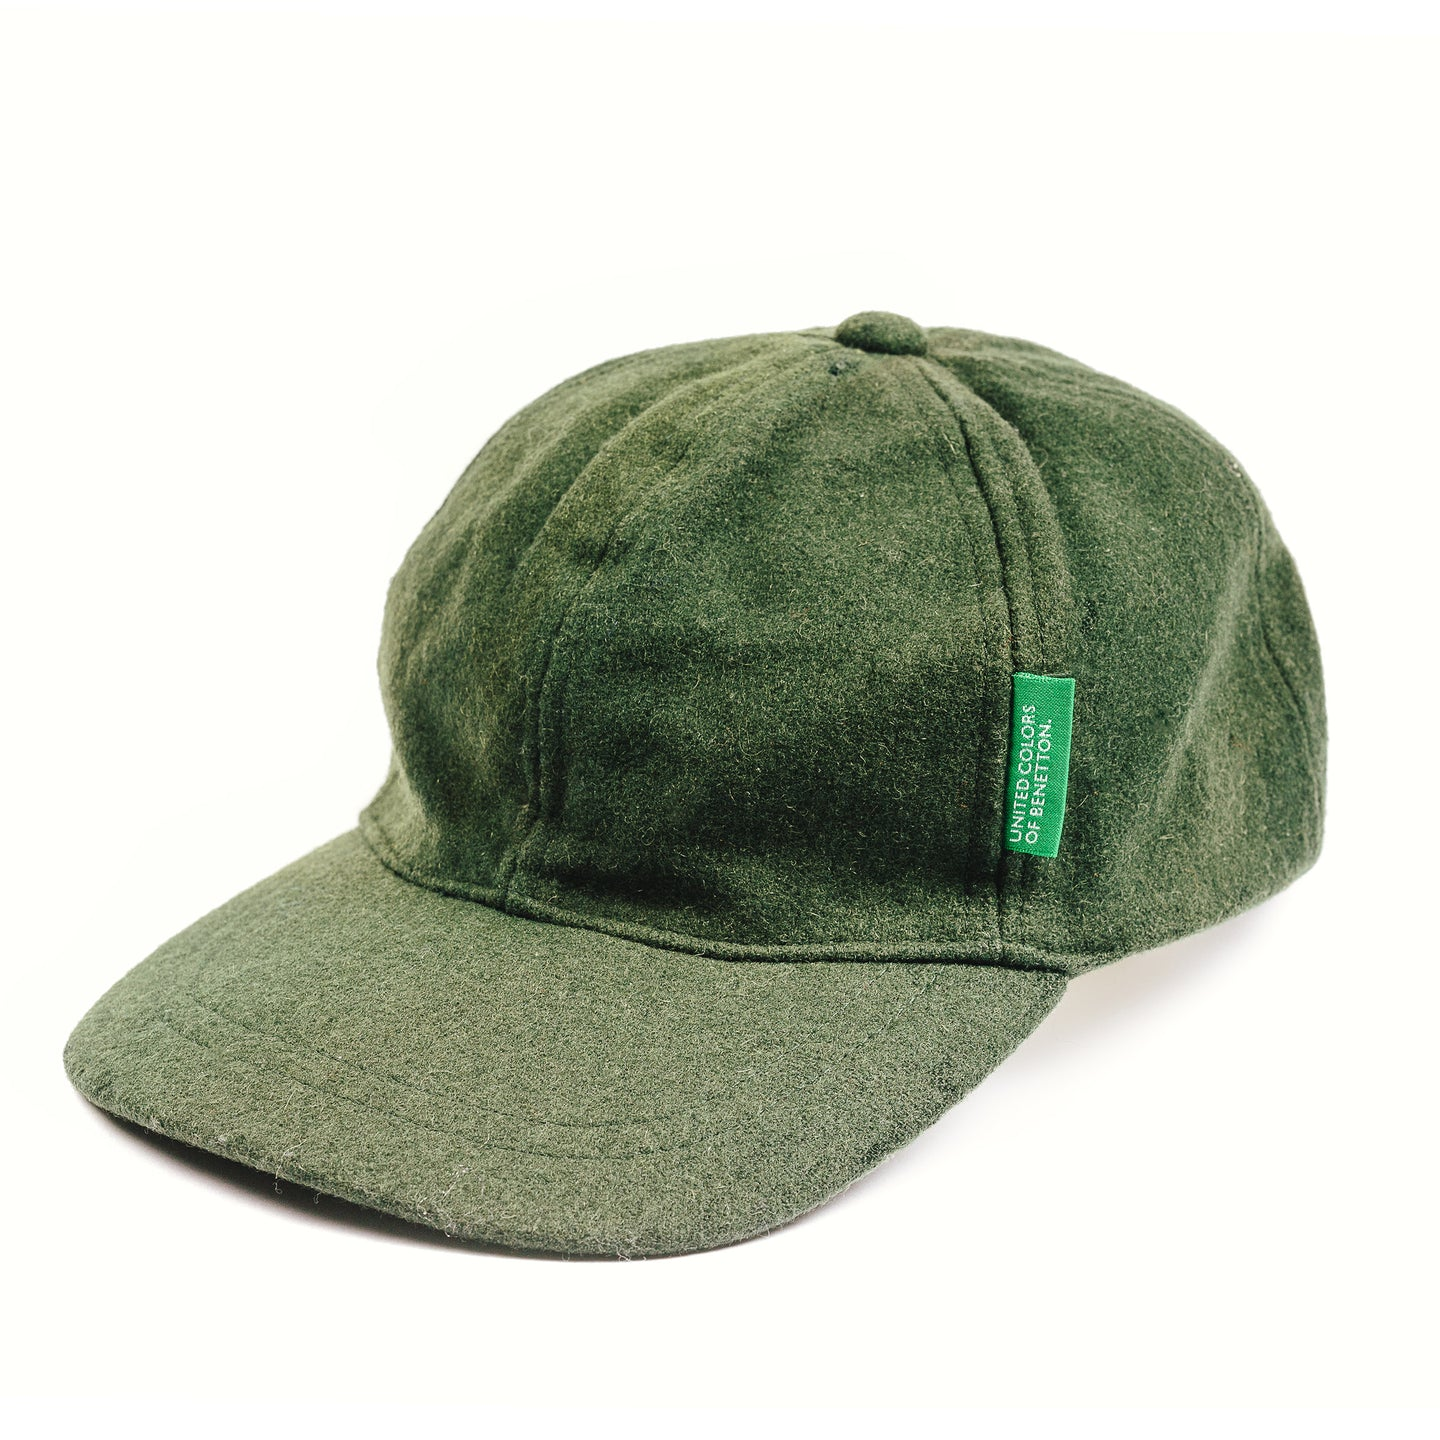 United Colors Of Bennetton Wool 6 Panel Hat